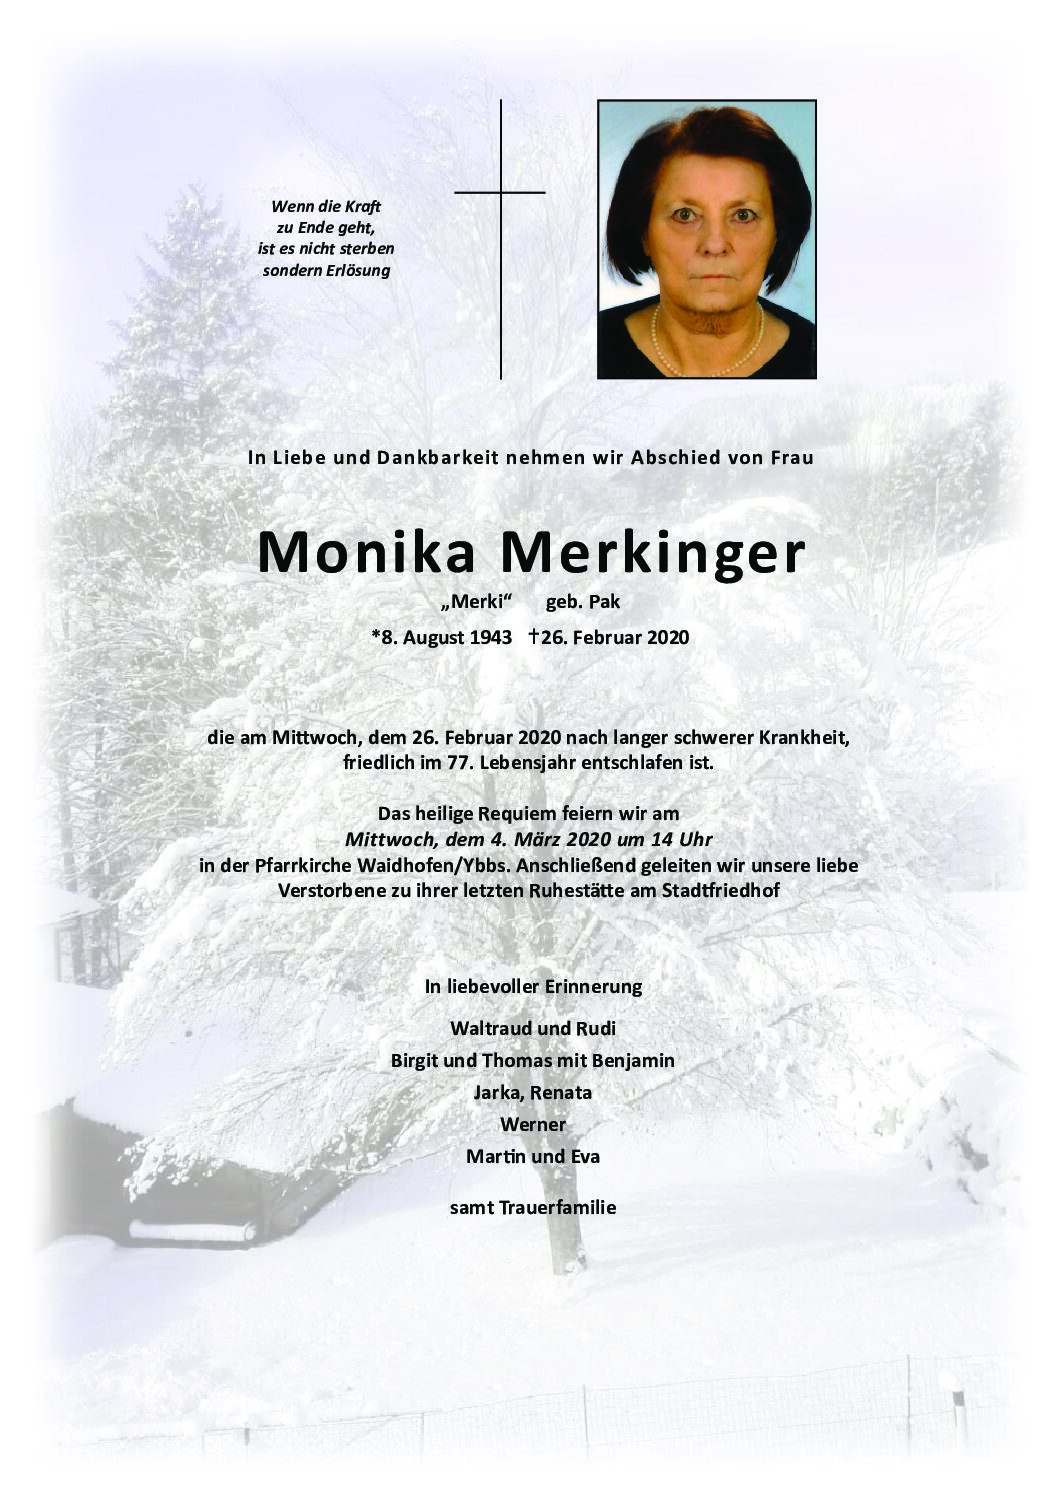 Monika Merkinger